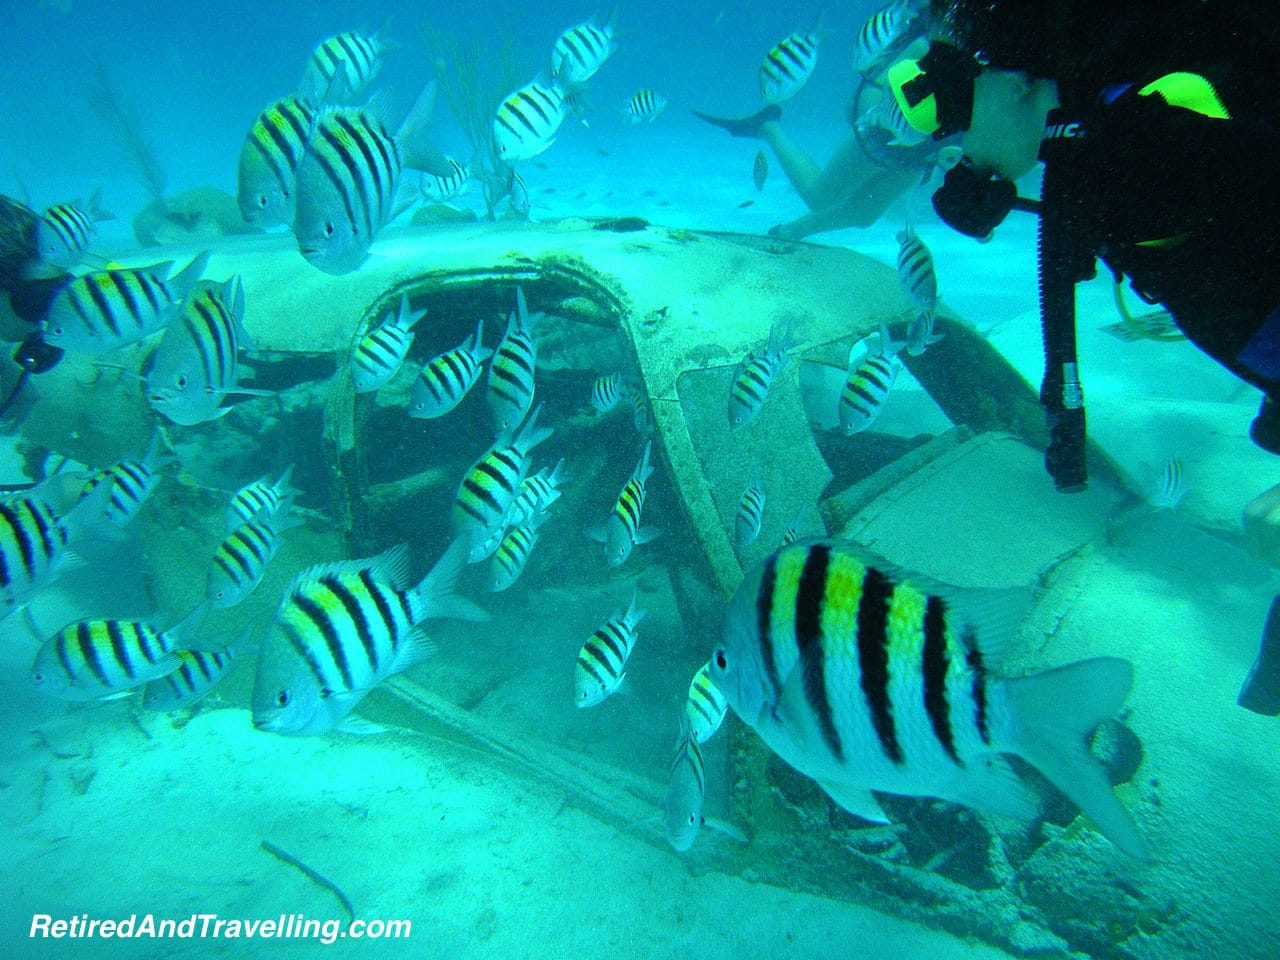 Scuba Dive Nassau James Bond Plane - Water Fun in Bahamas.jpg